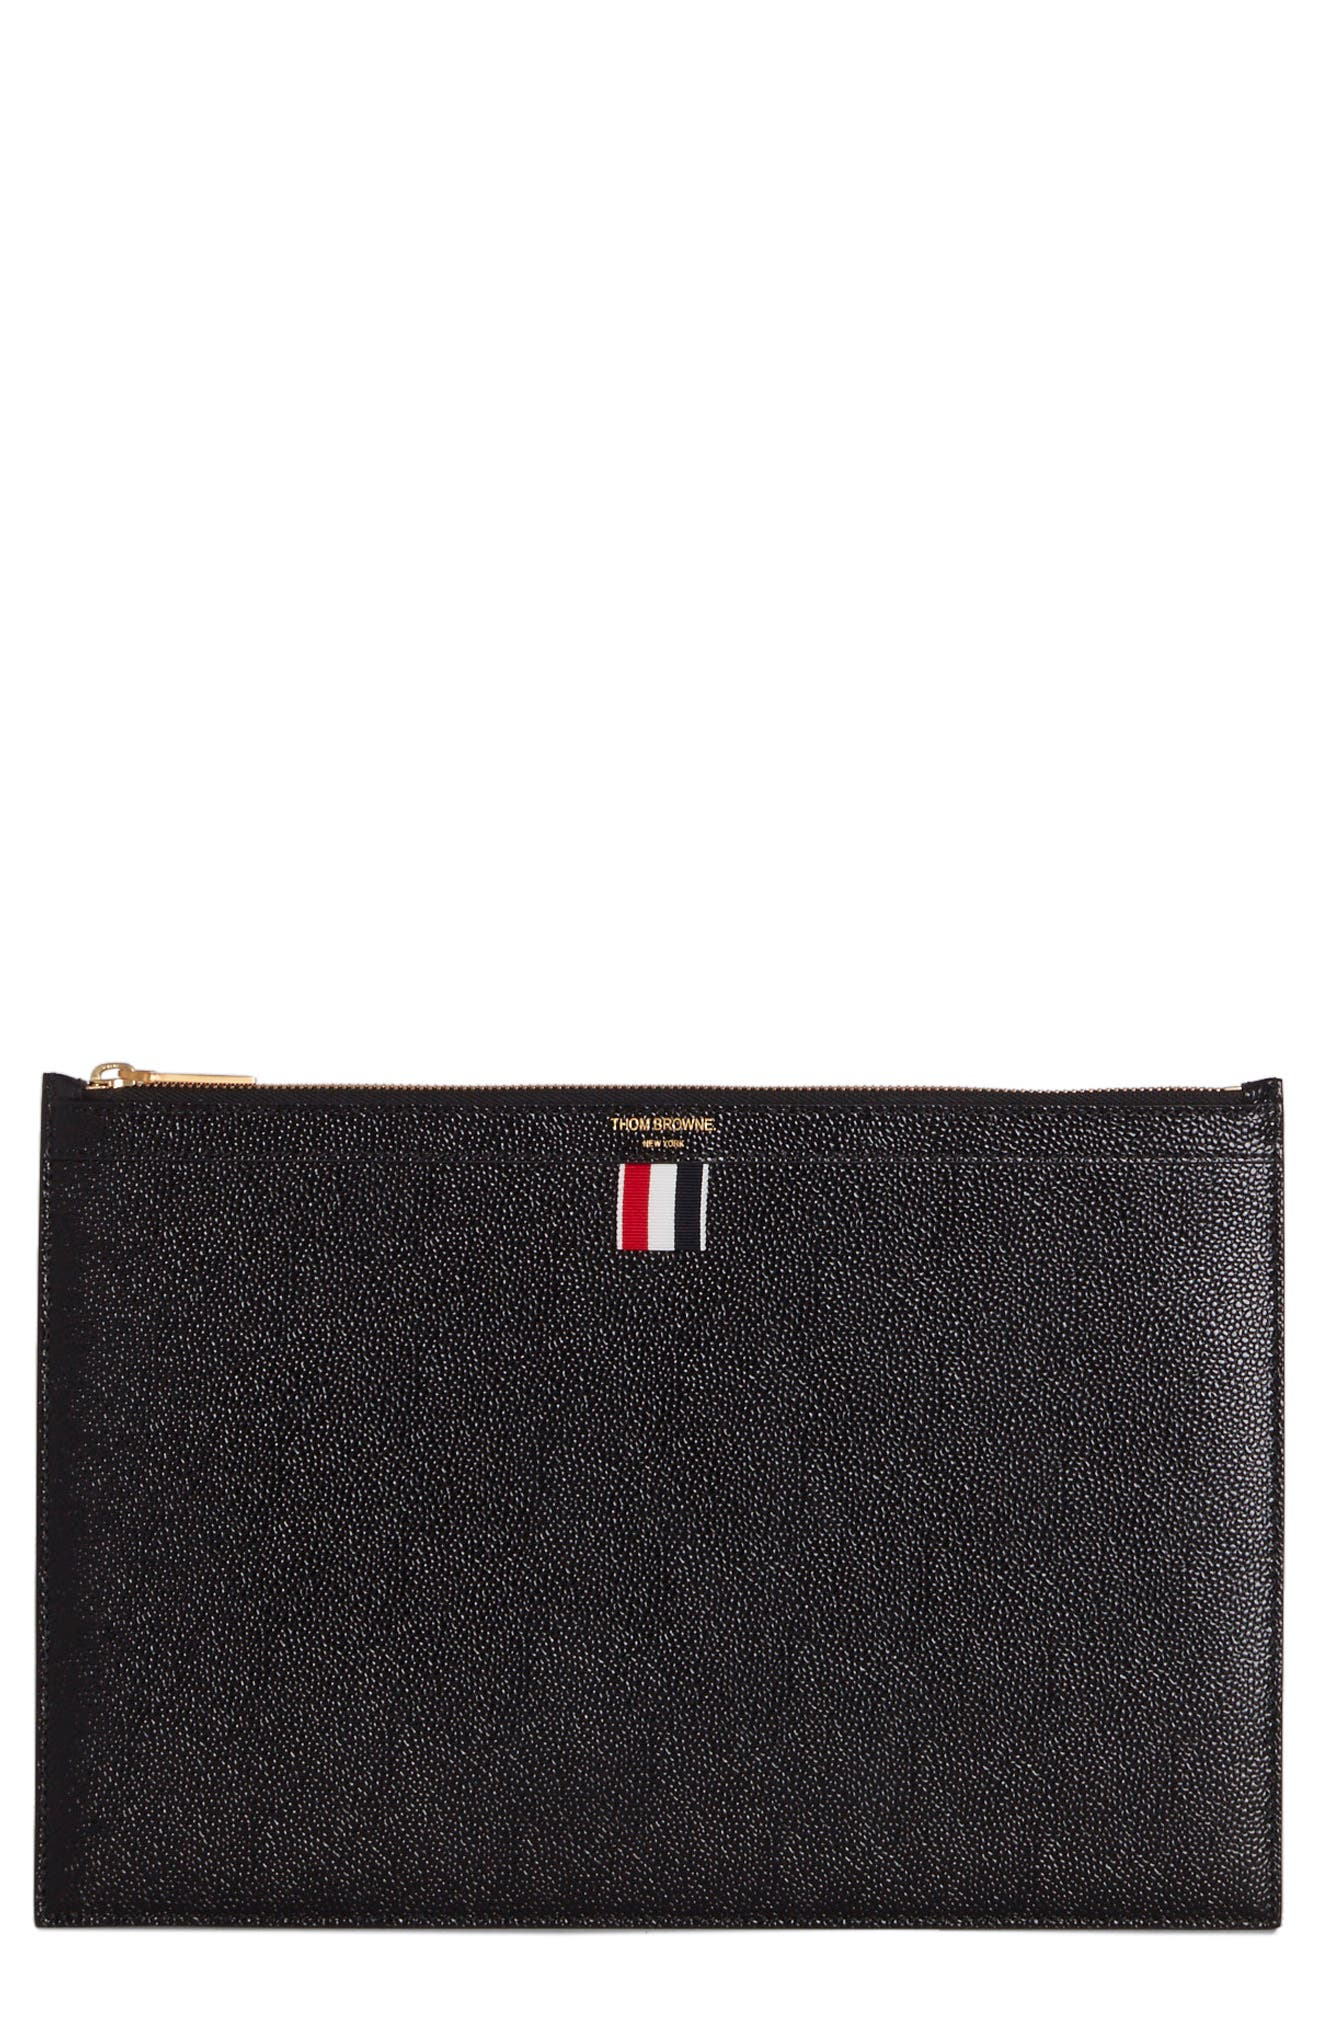 THOM BROWNE, Leather Zip Folio Pouch, Main thumbnail 1, color, BLACK